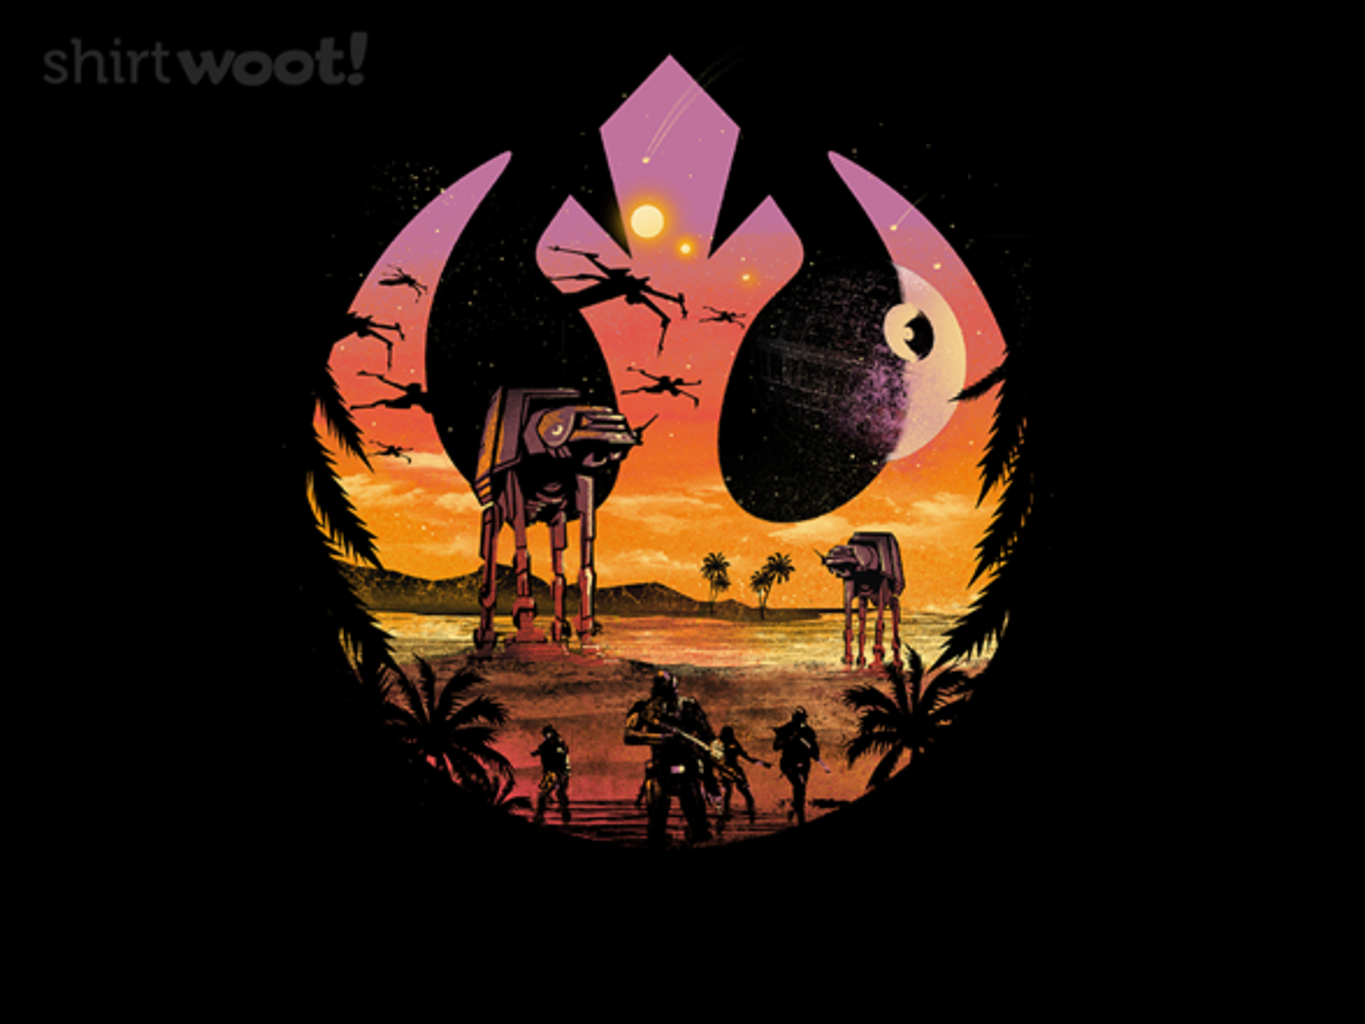 Woot!: Rebellion Sunset